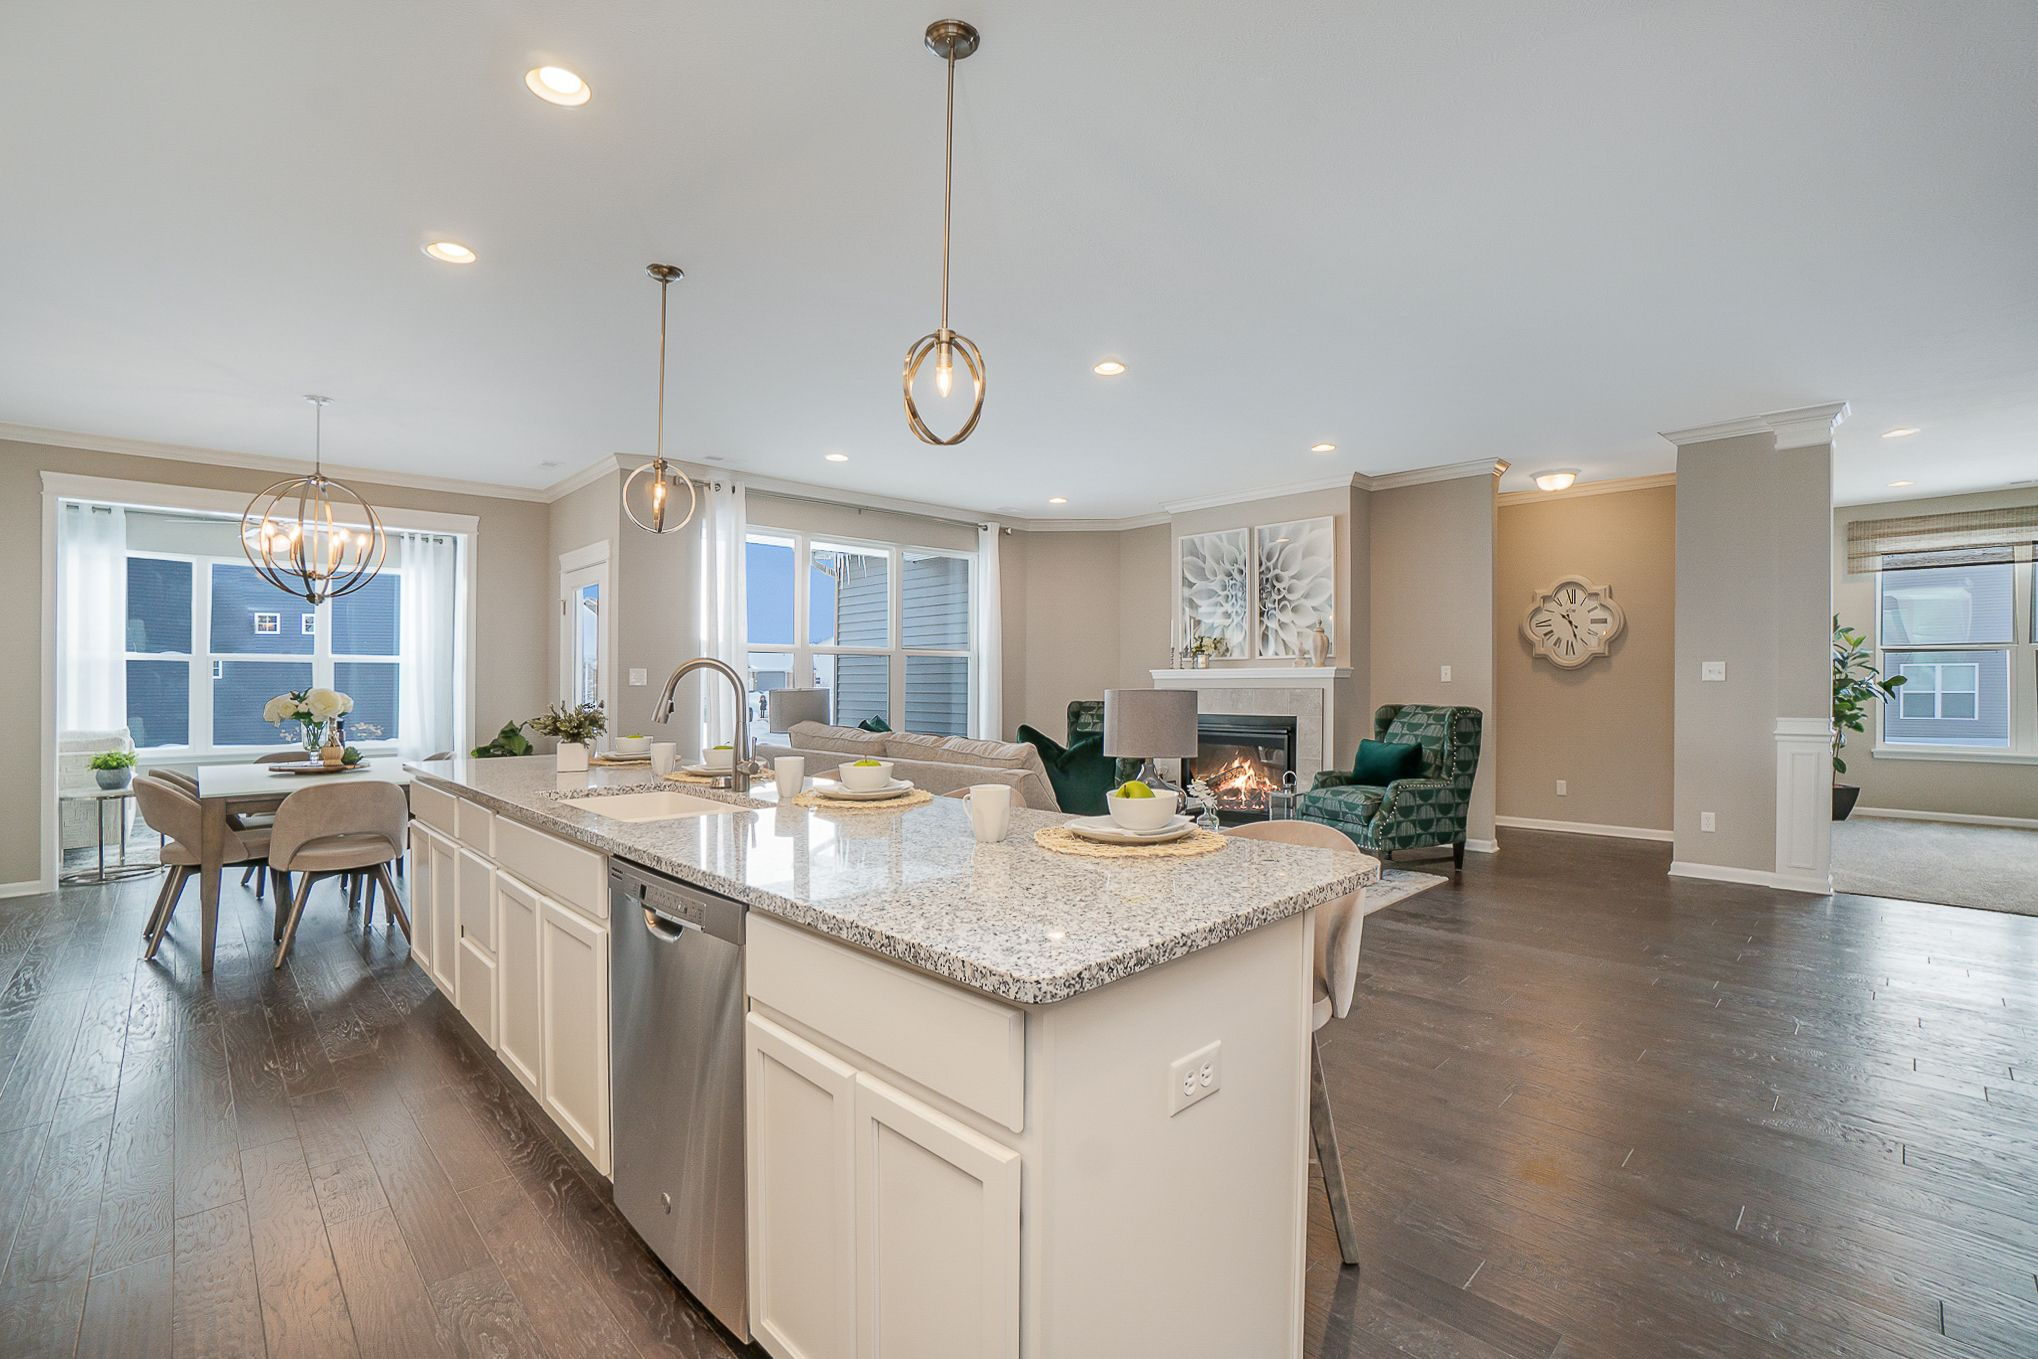 Kitchen featured in the Nottingham By Olthof Homes in Gary, IN